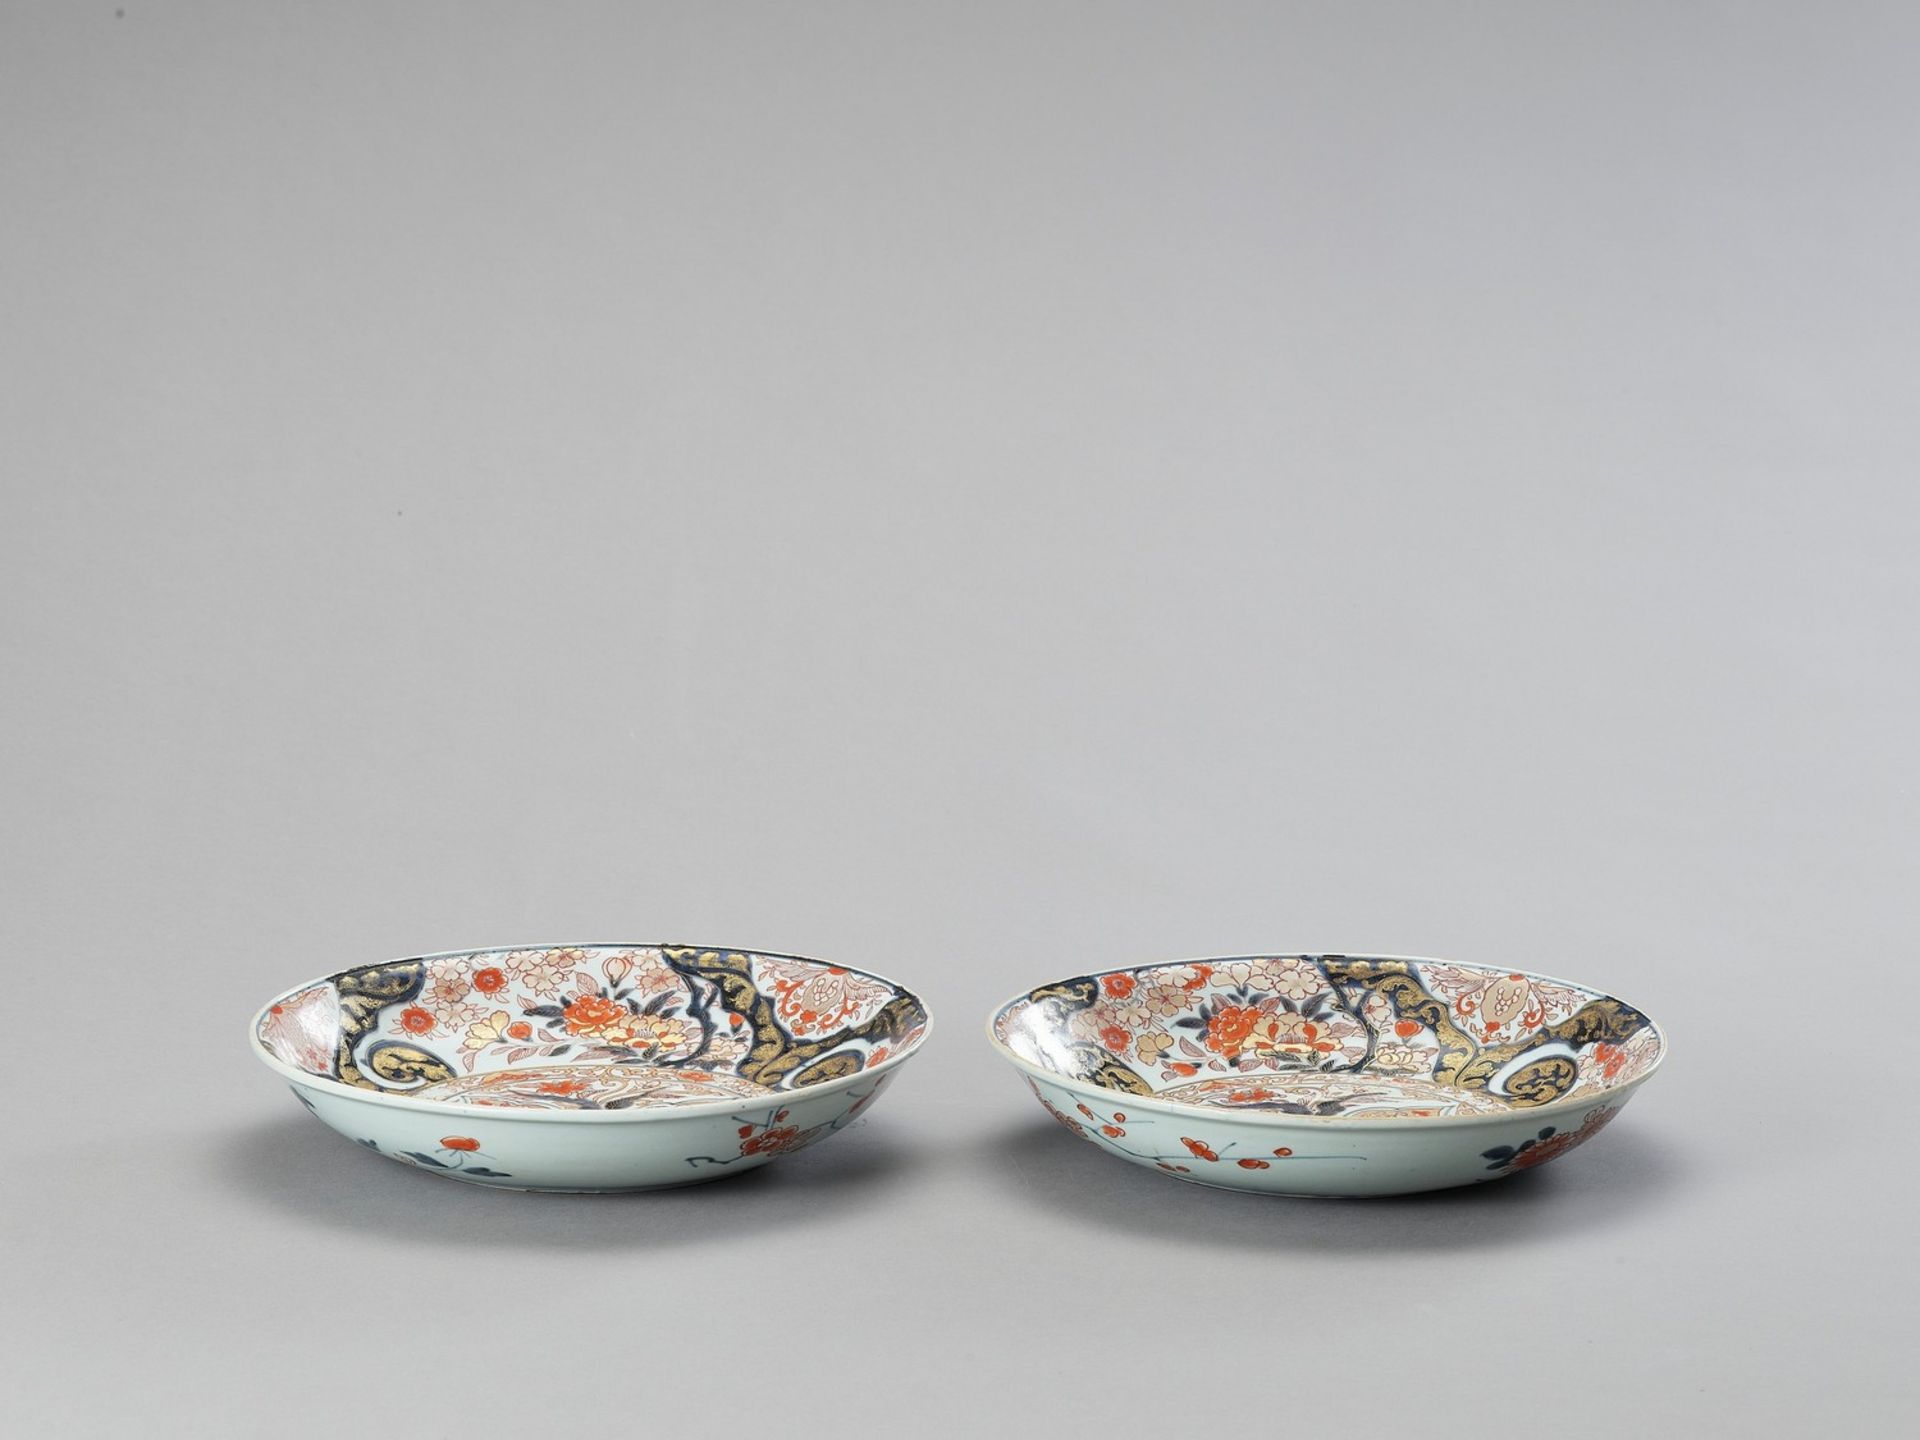 A PAIR OF IMARI PORCELAIN DISHES - Image 2 of 4